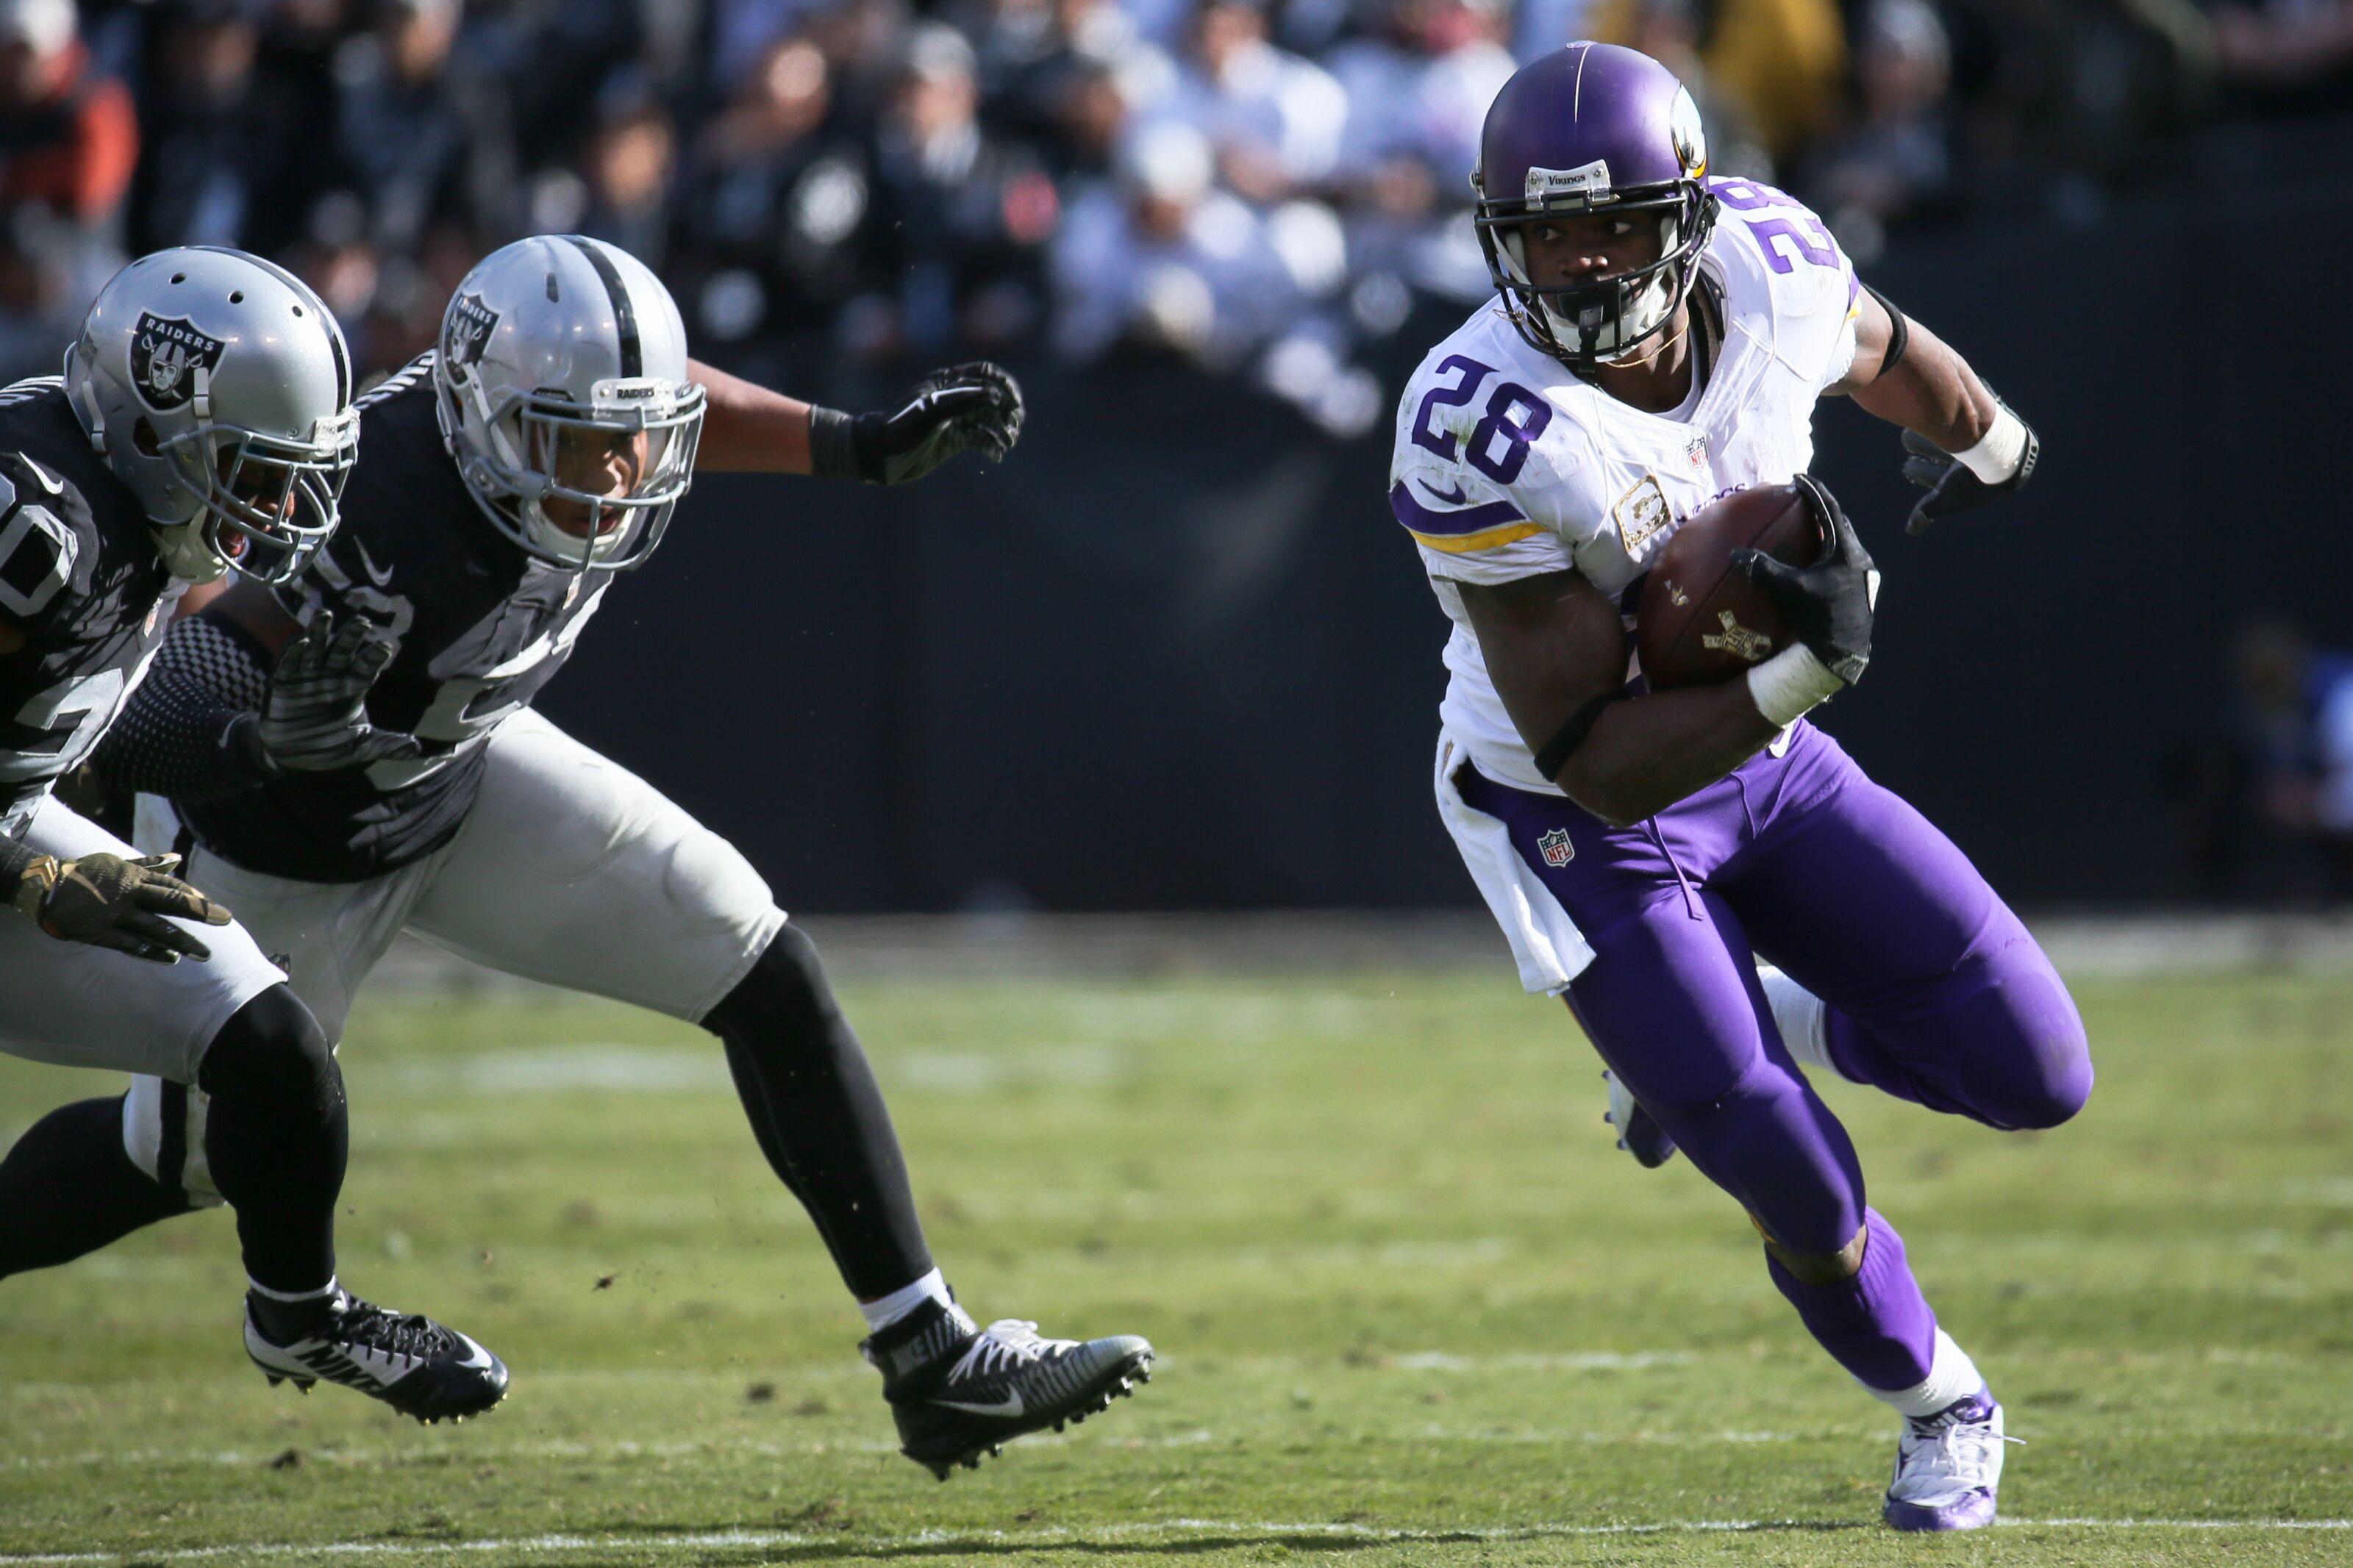 Flashback: Peterson leads Vikings to win over Raiders in 2015